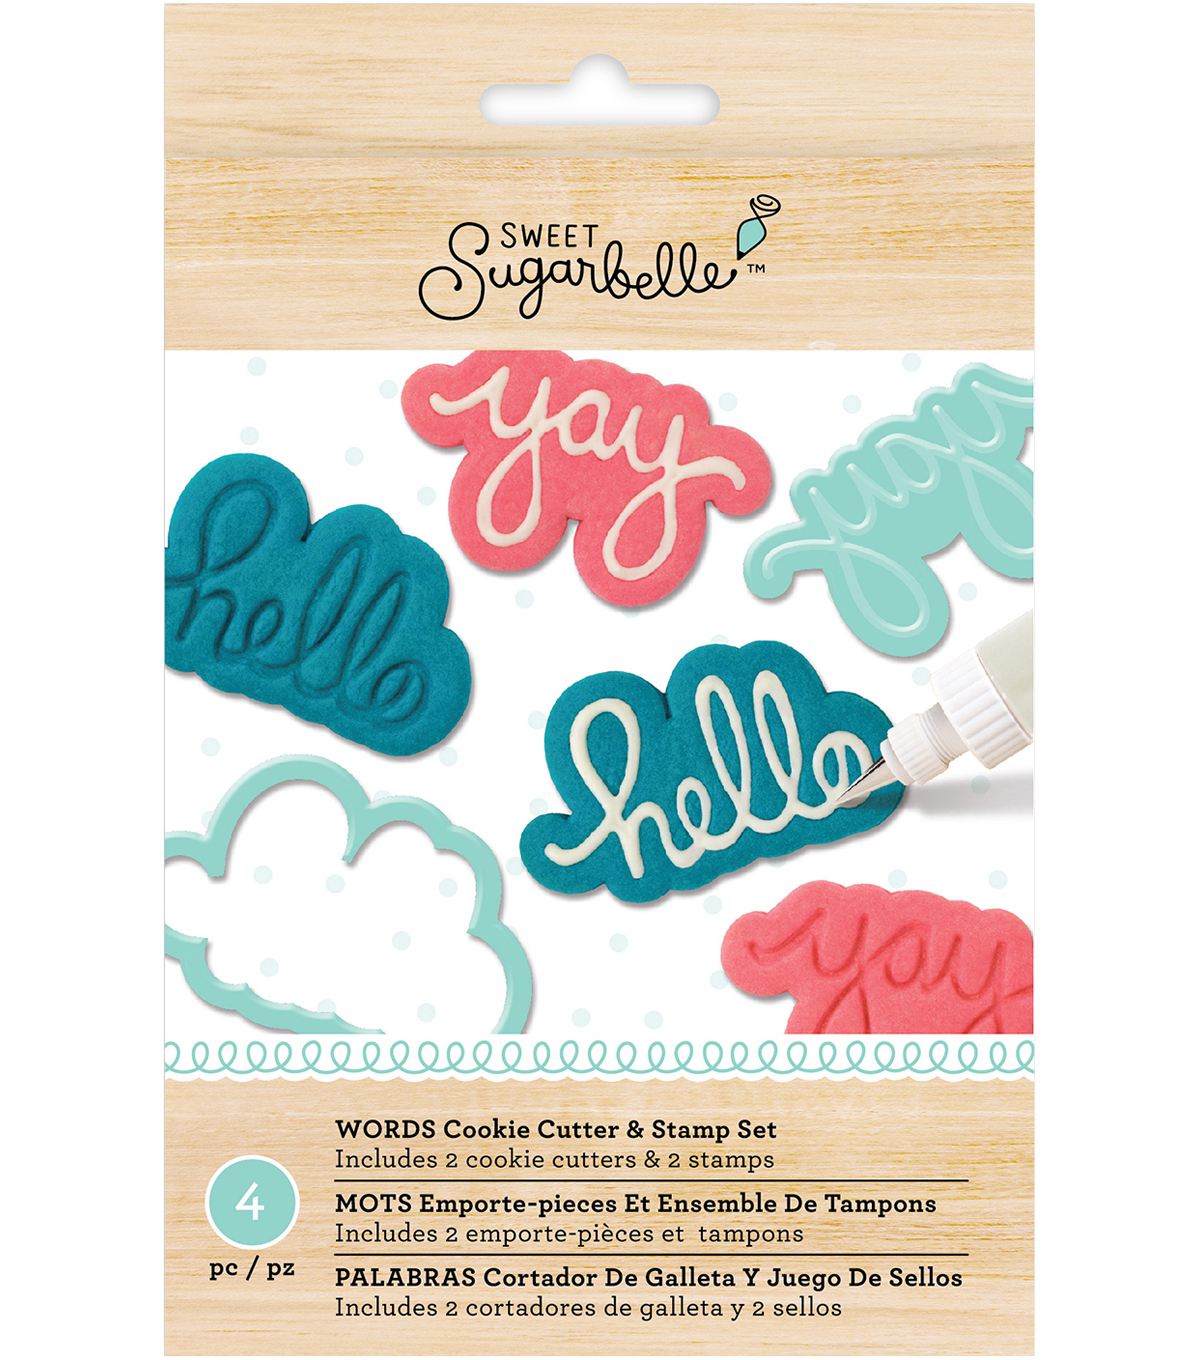 Sweet Sugarbelle Specialty Cookie Cutter & Stamp Set-Words